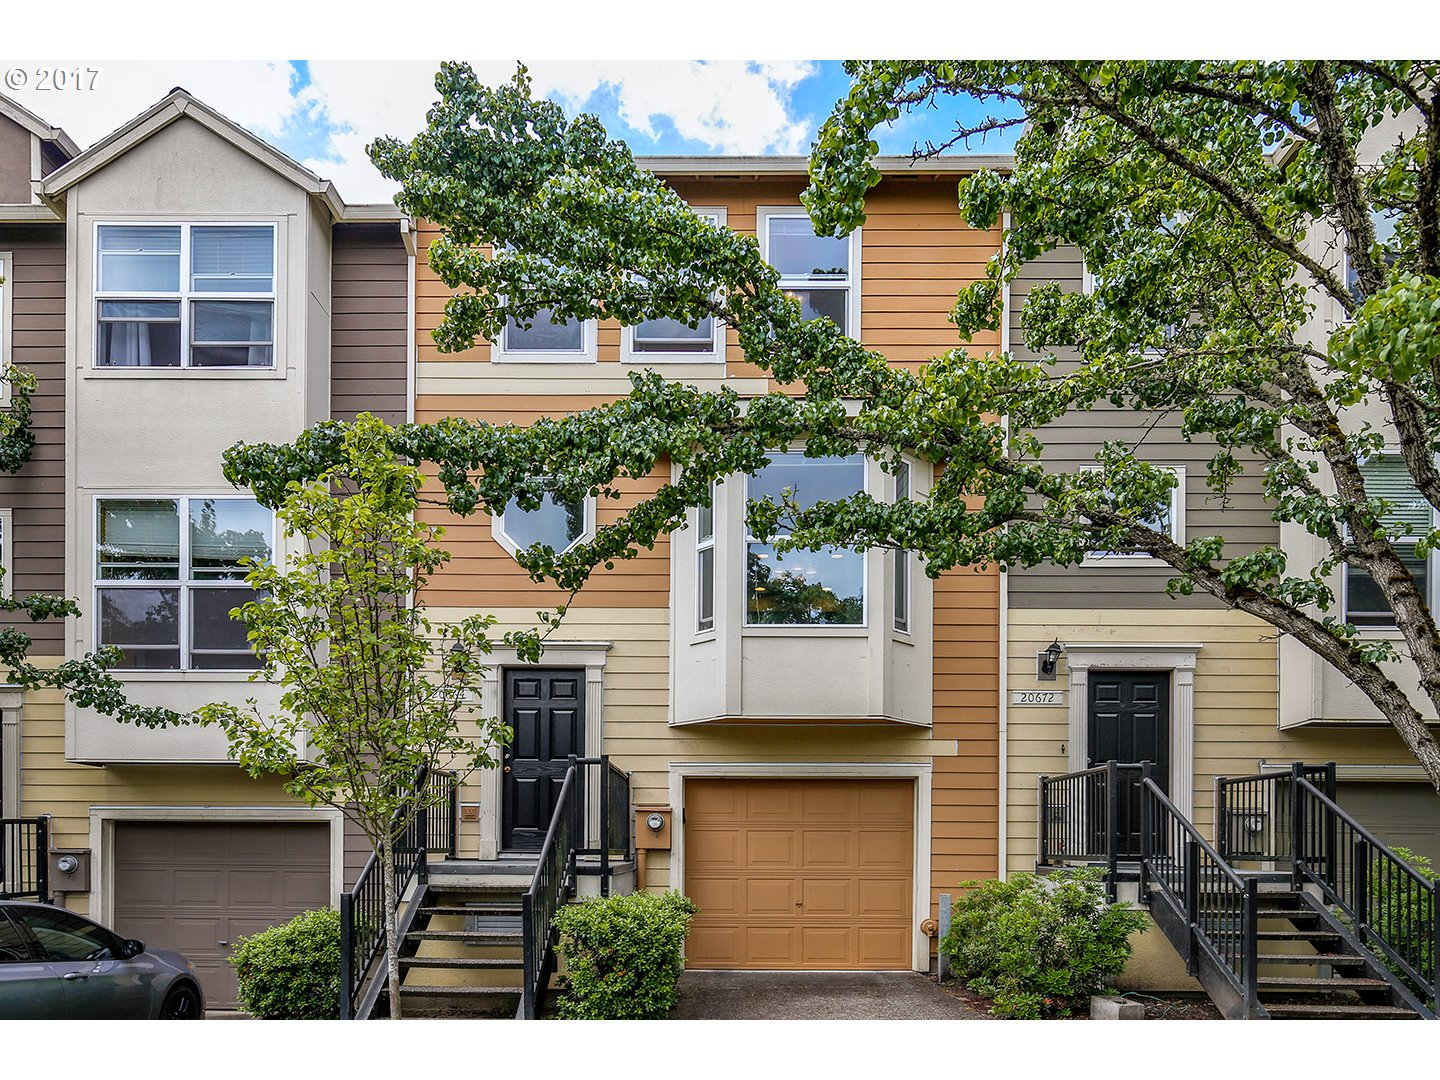 20664 NW PAINTED MOUNTAIN DR, Beaverton, OR 97006